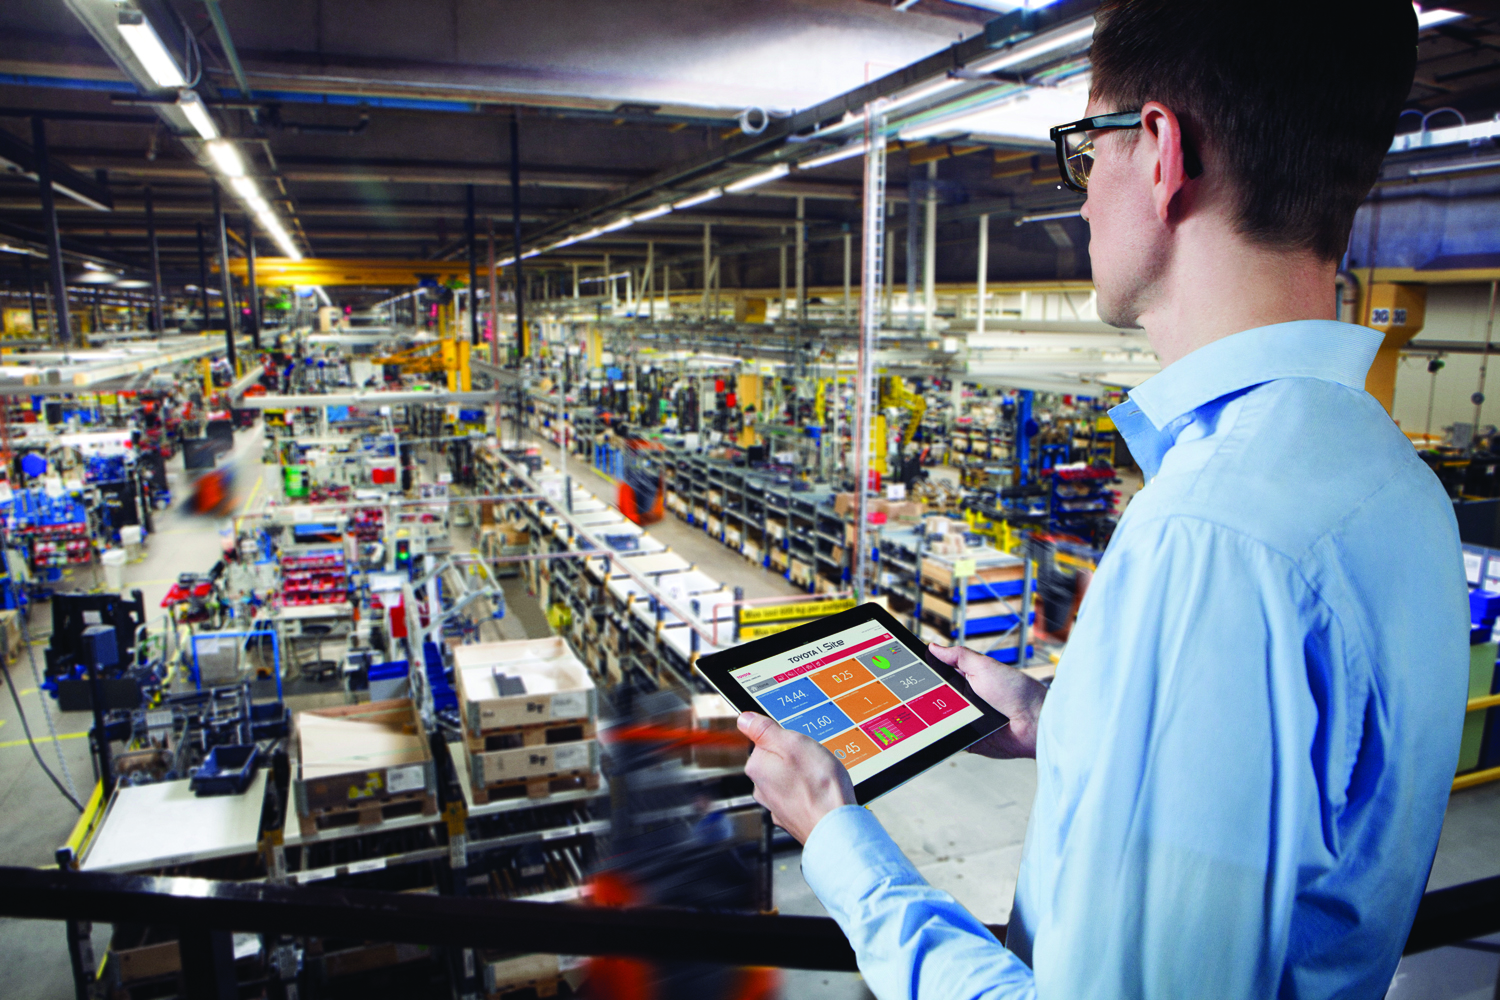 Toyota I_Site - Manager using mobile app